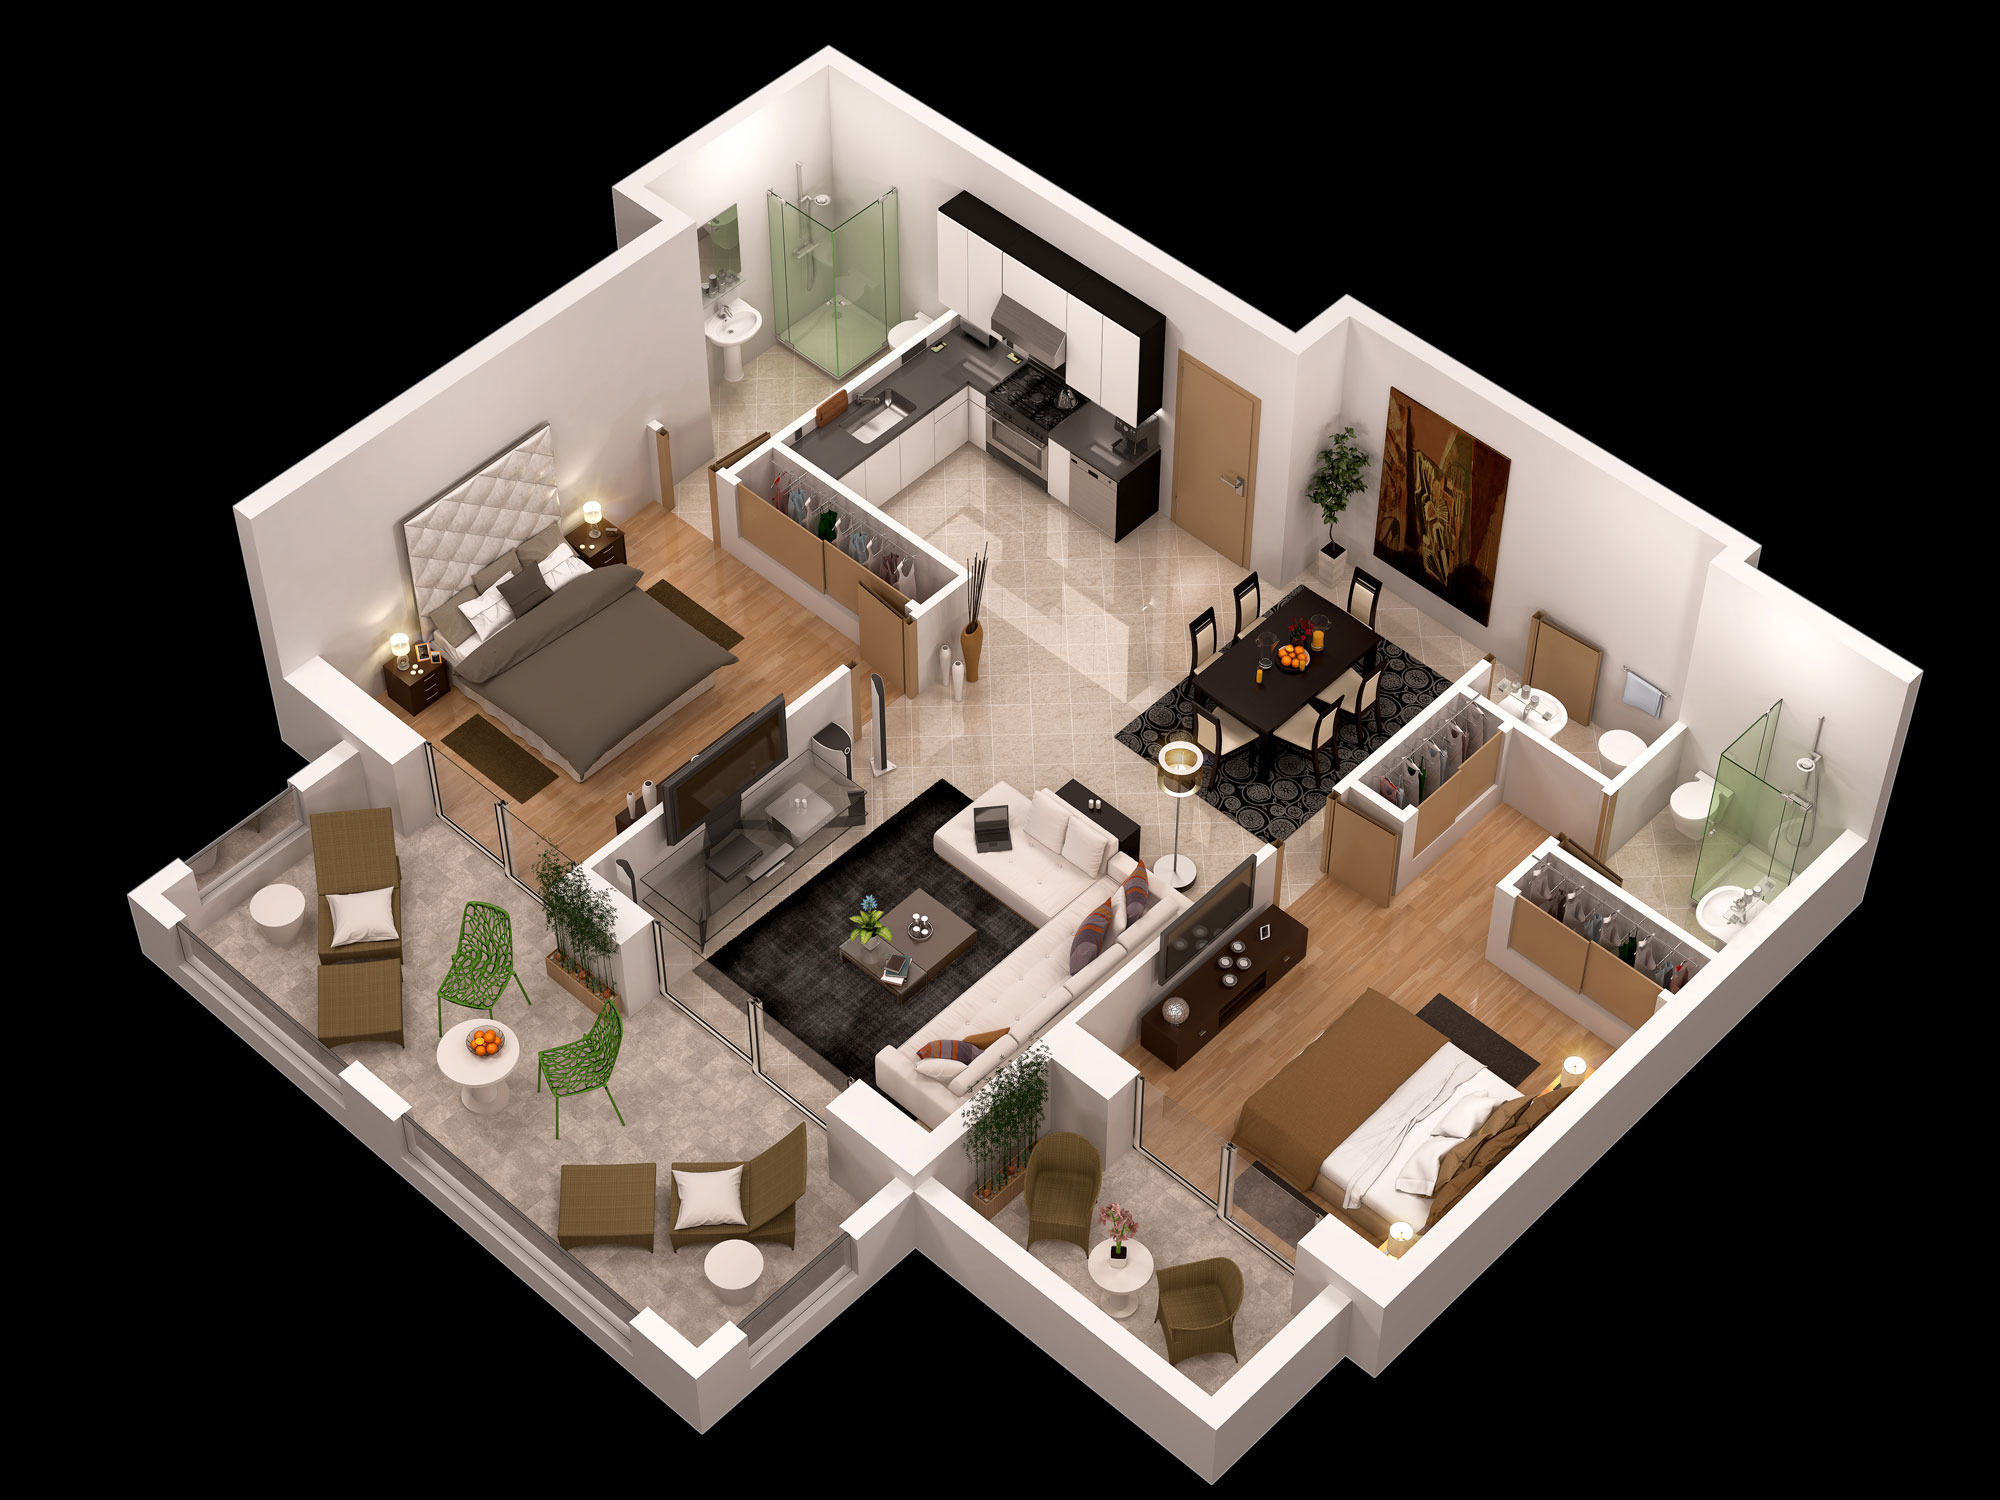 detailed-floor-plan-3d-3d-model-max-obj